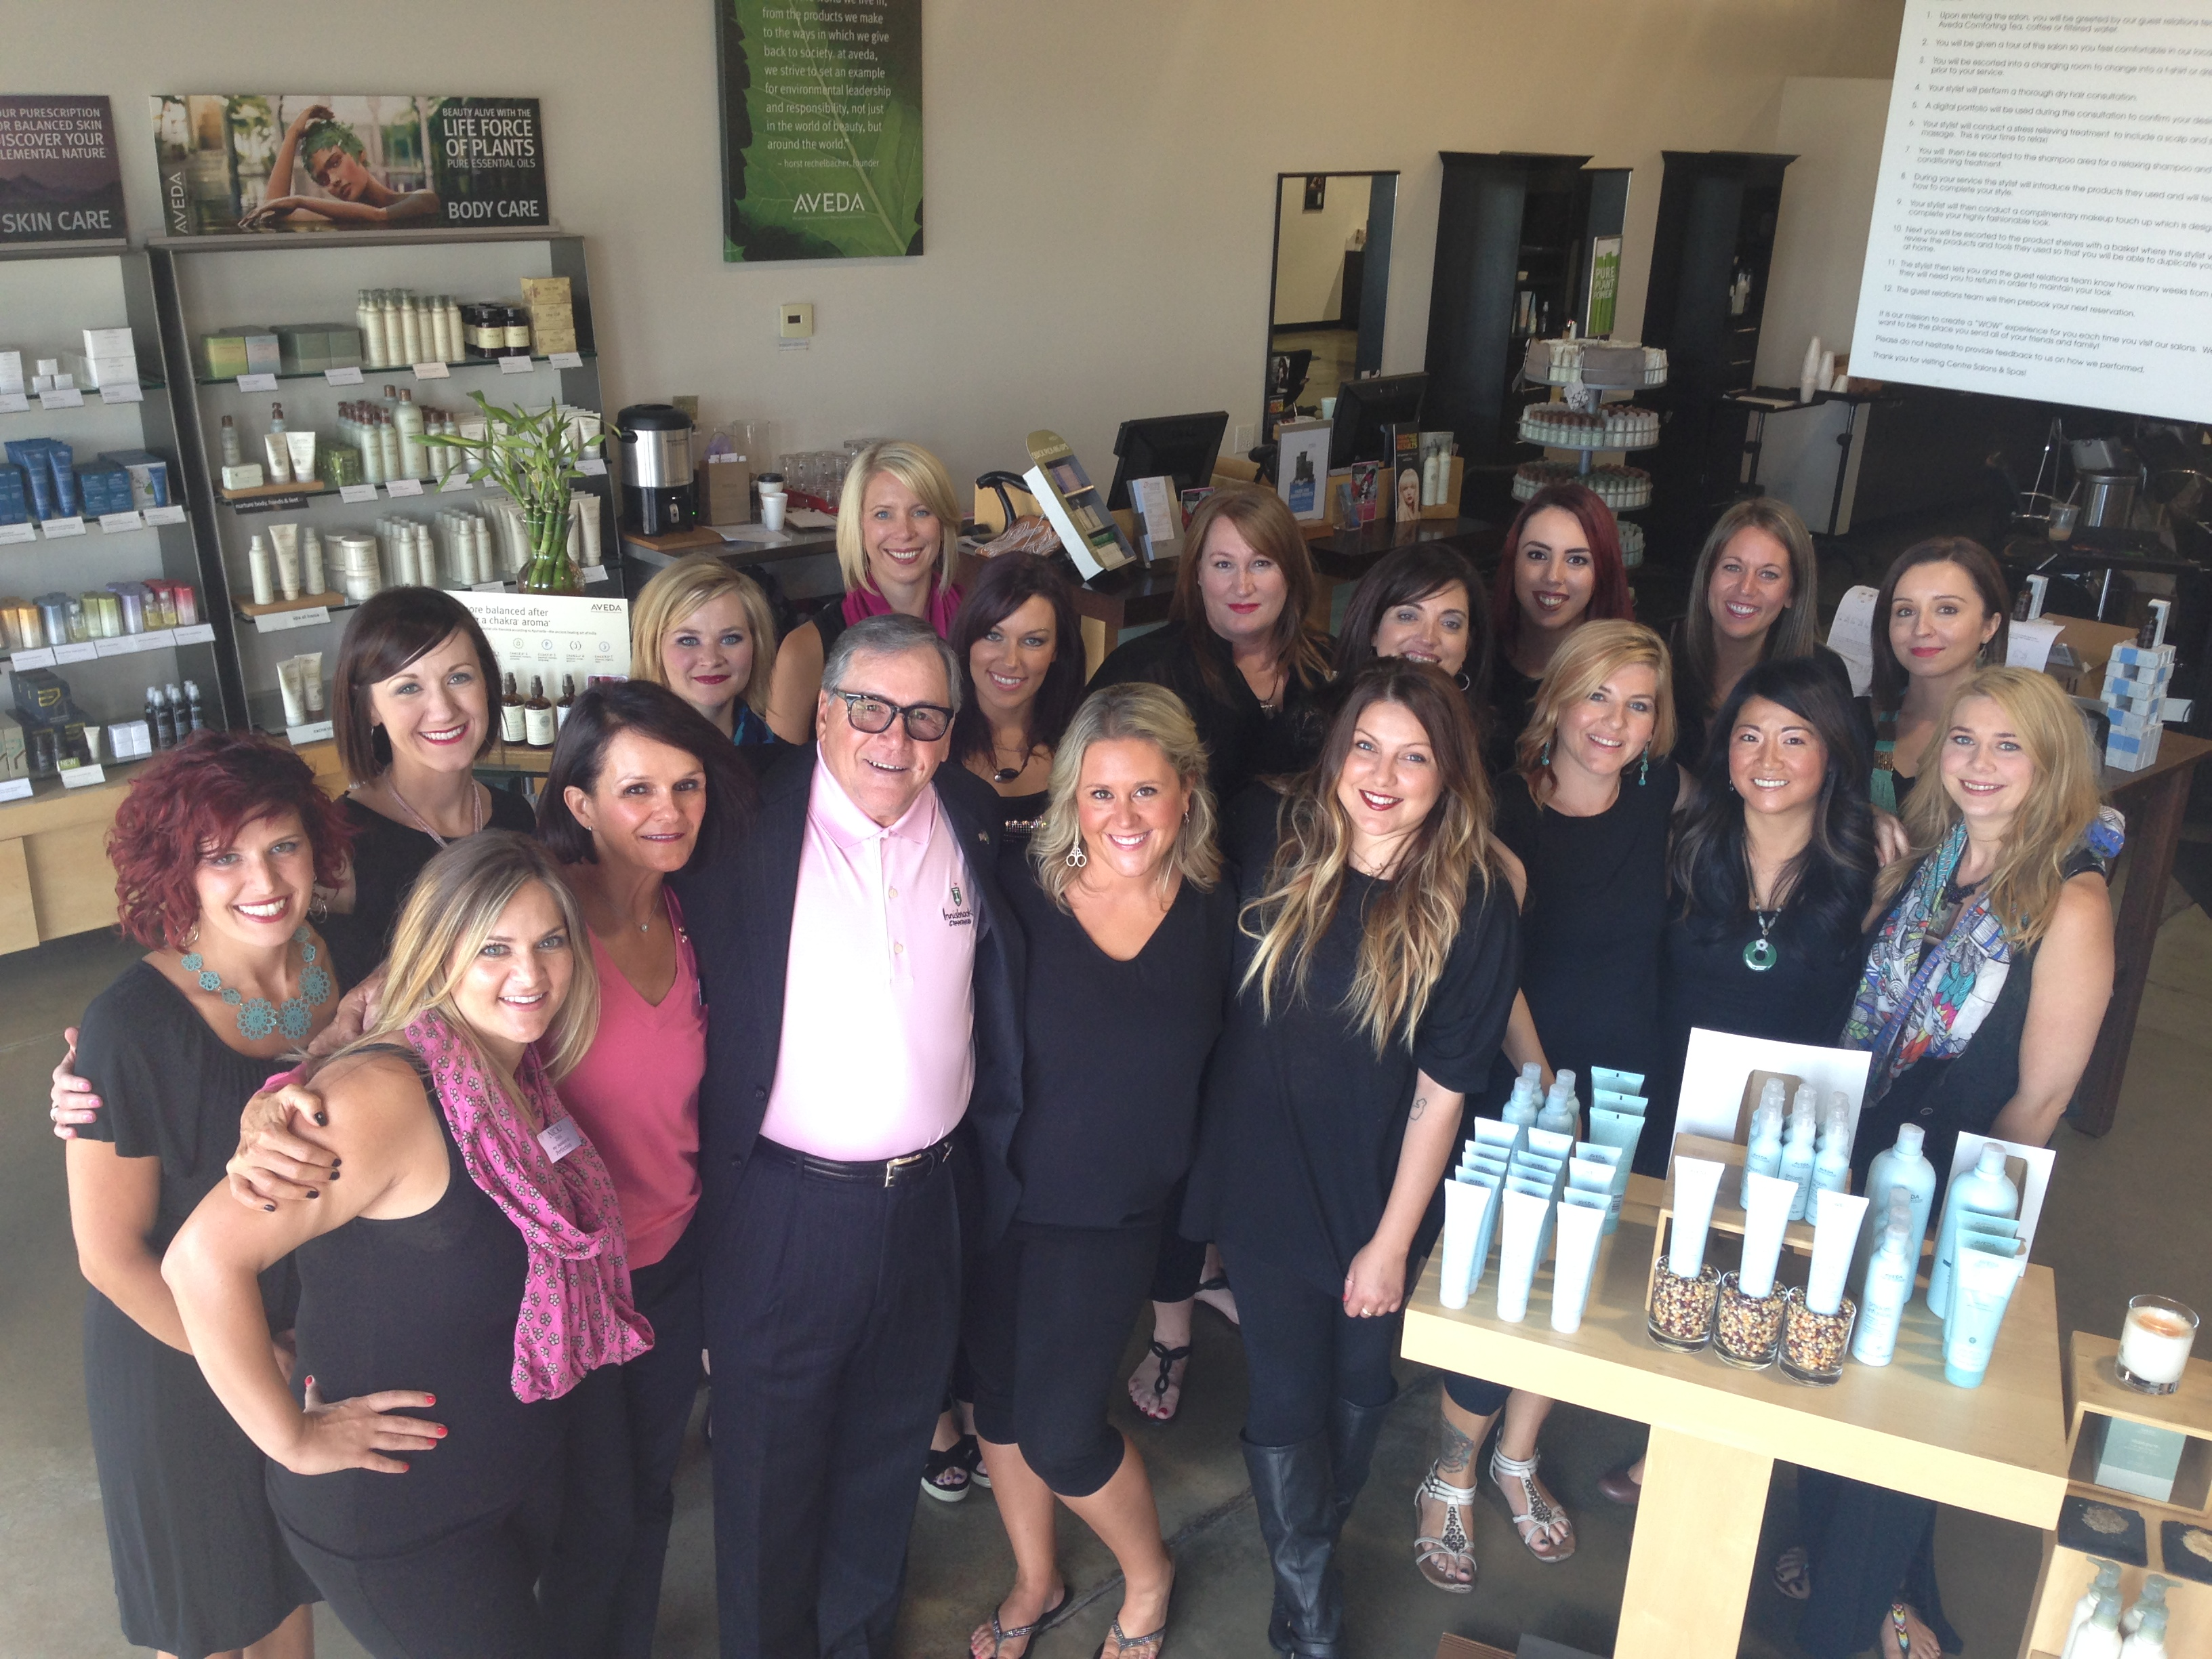 The team from Centre Salon & Day Spa, Tiffany Plaza in Denver, Colorado, owned by James Pacifico.